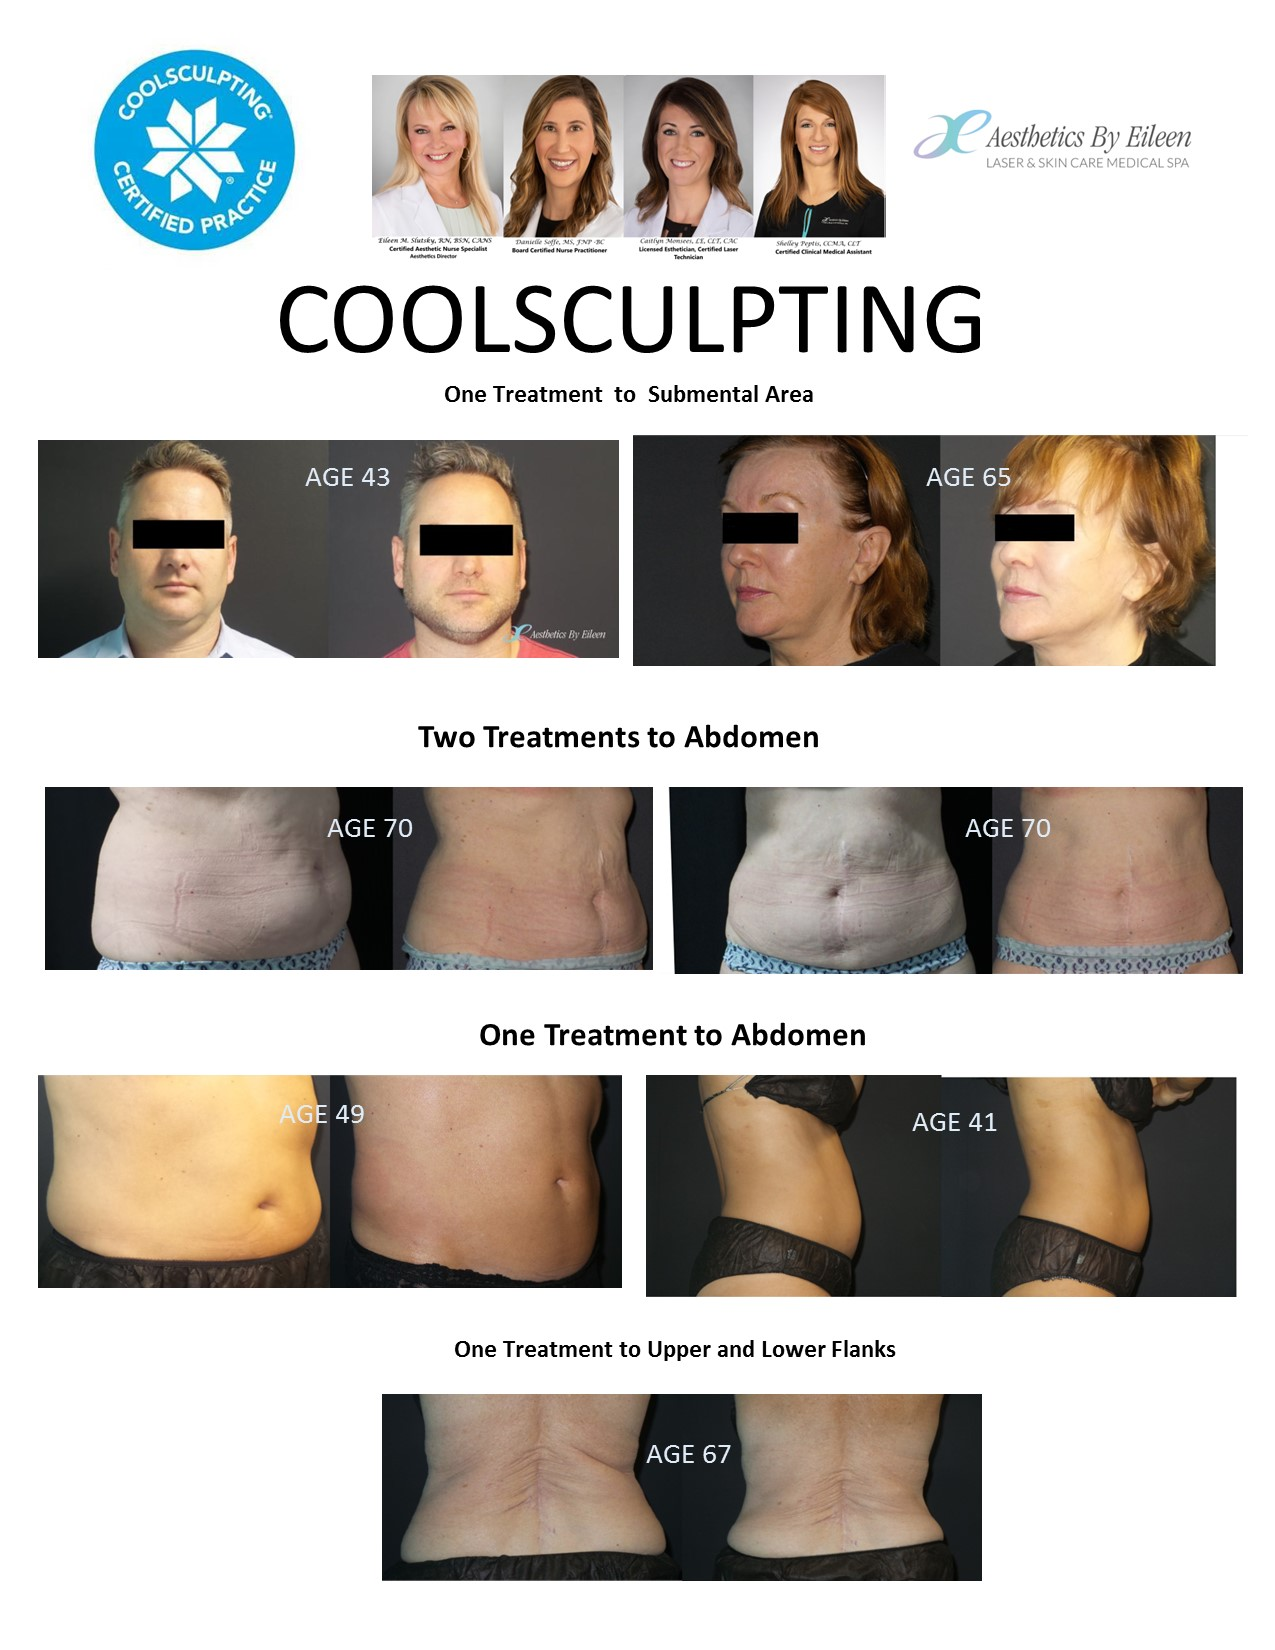 Real clients of Eileen's experience dramatic results from CoolSculpting